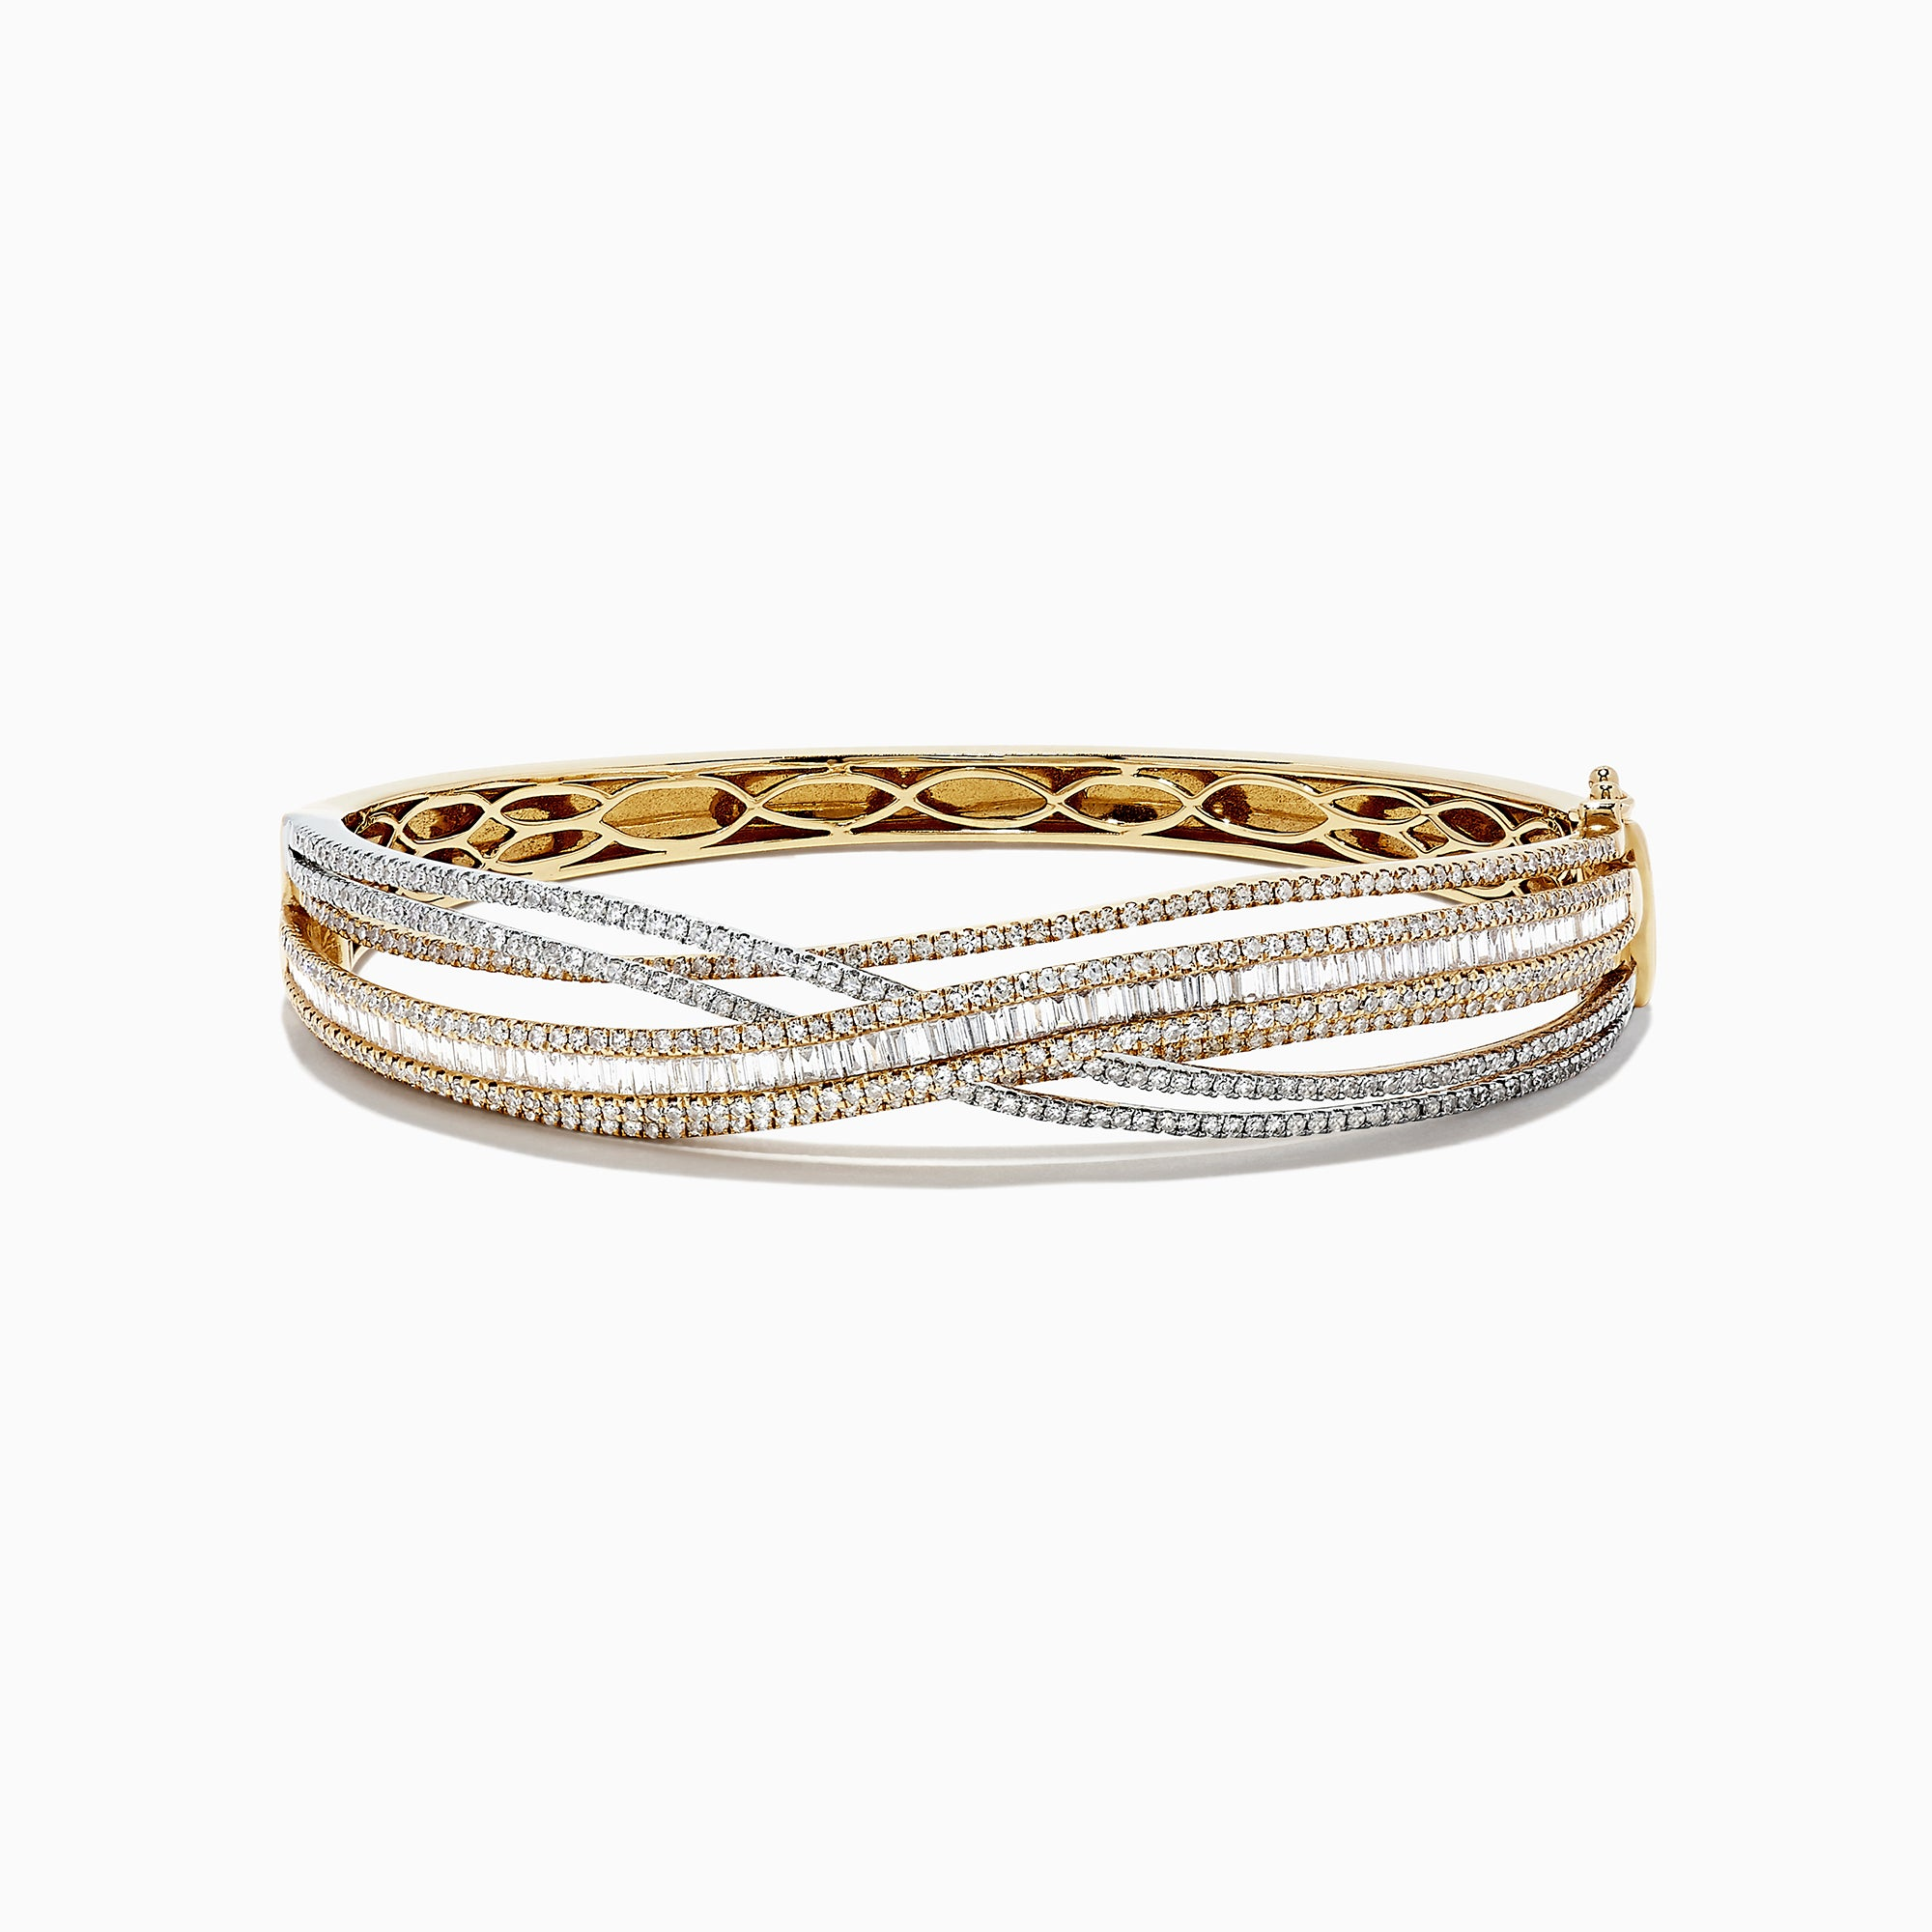 Effy Duo 14K Two Tone Gold Diamond Crossover Bangle, 3.15 TCW